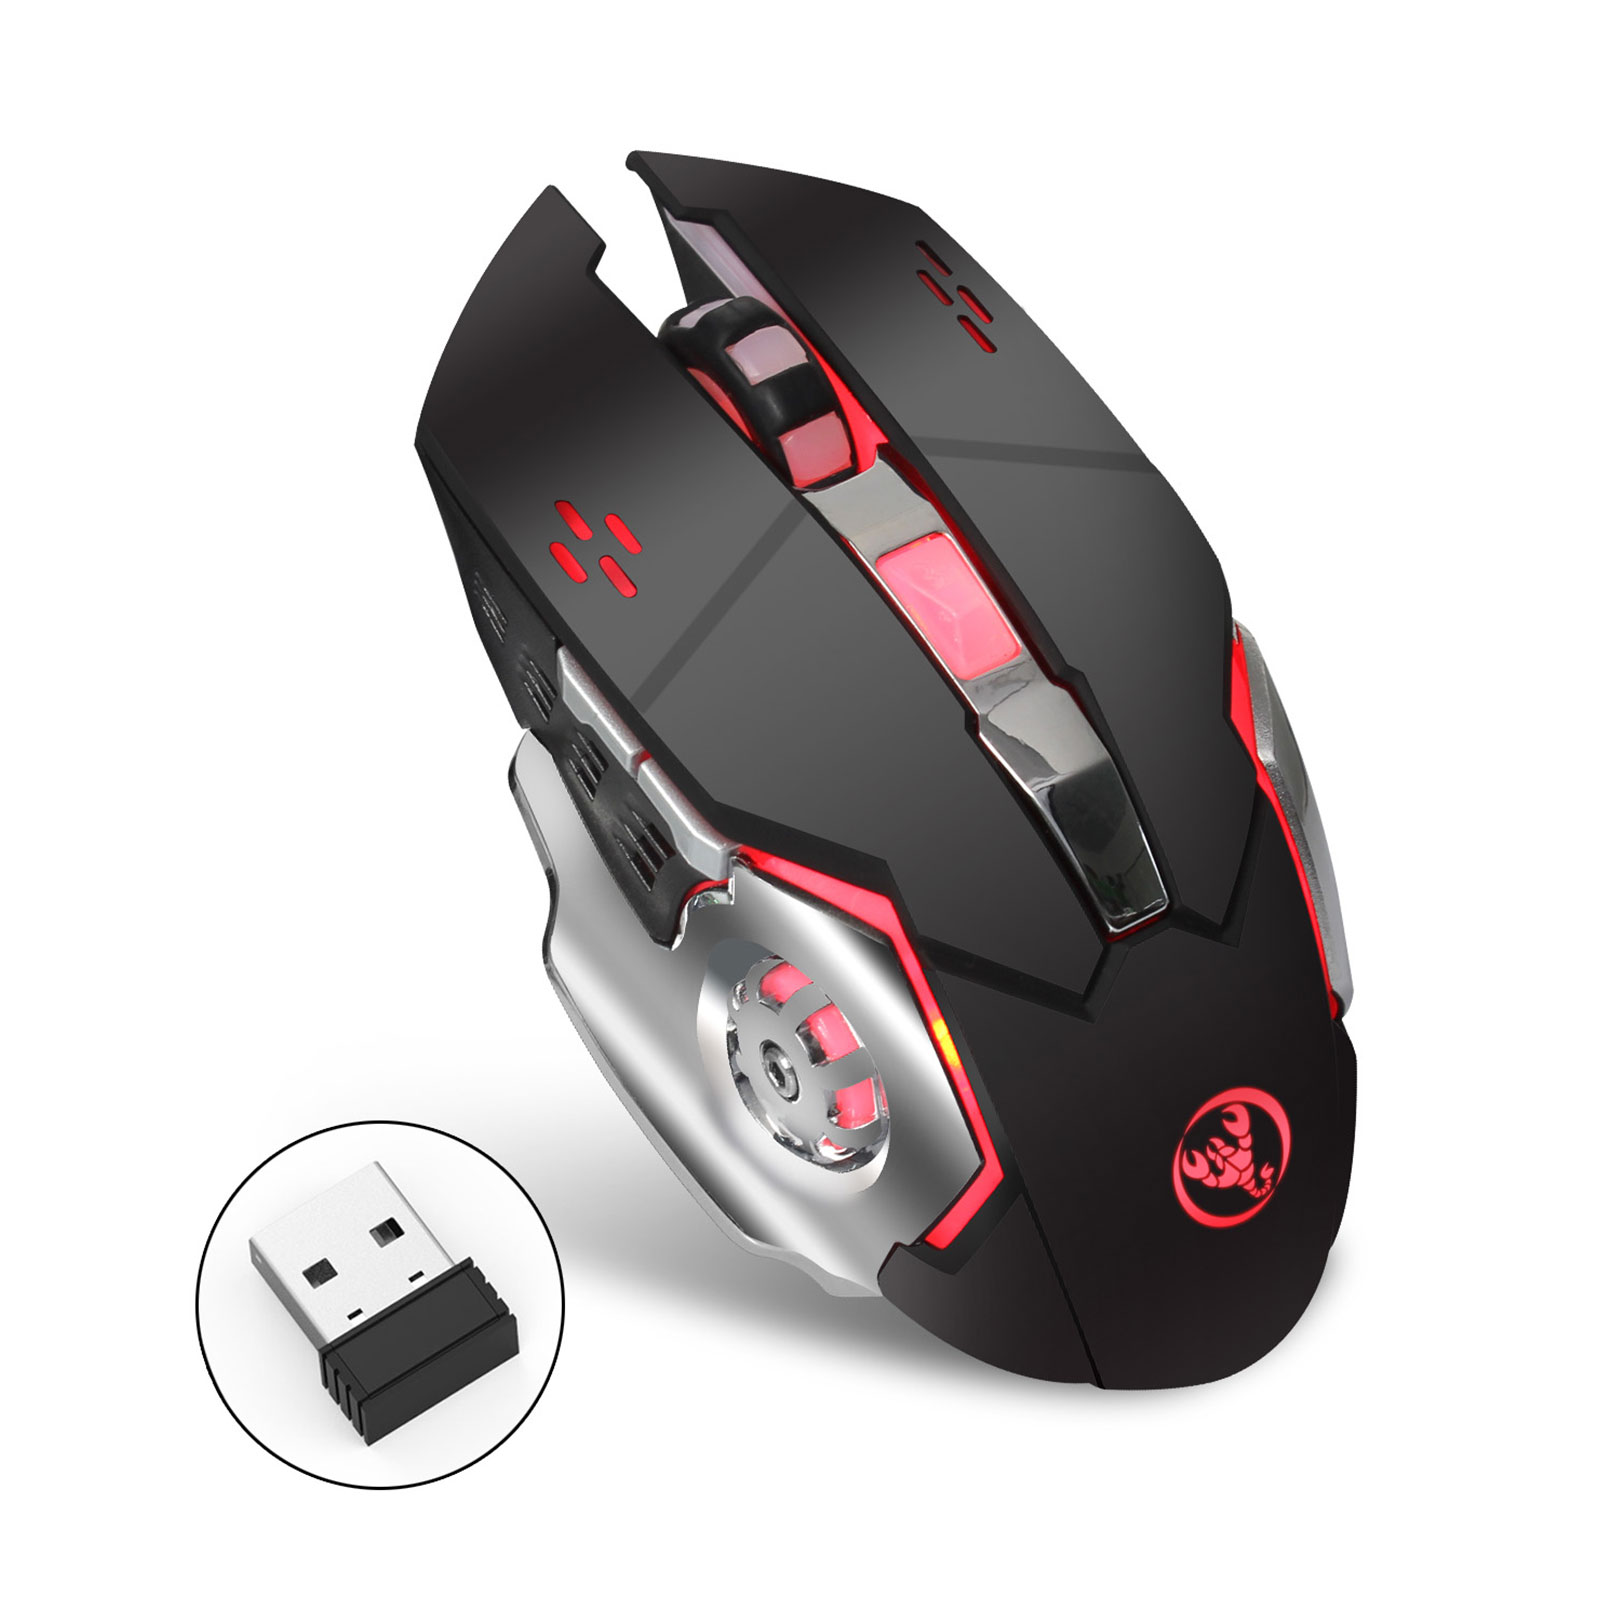 TSV M70 2400 DPI Backlit Rechargeable 2.4GHz Wireless USB Optical Gaming Mouse Mice(UPGRADED VERSION)